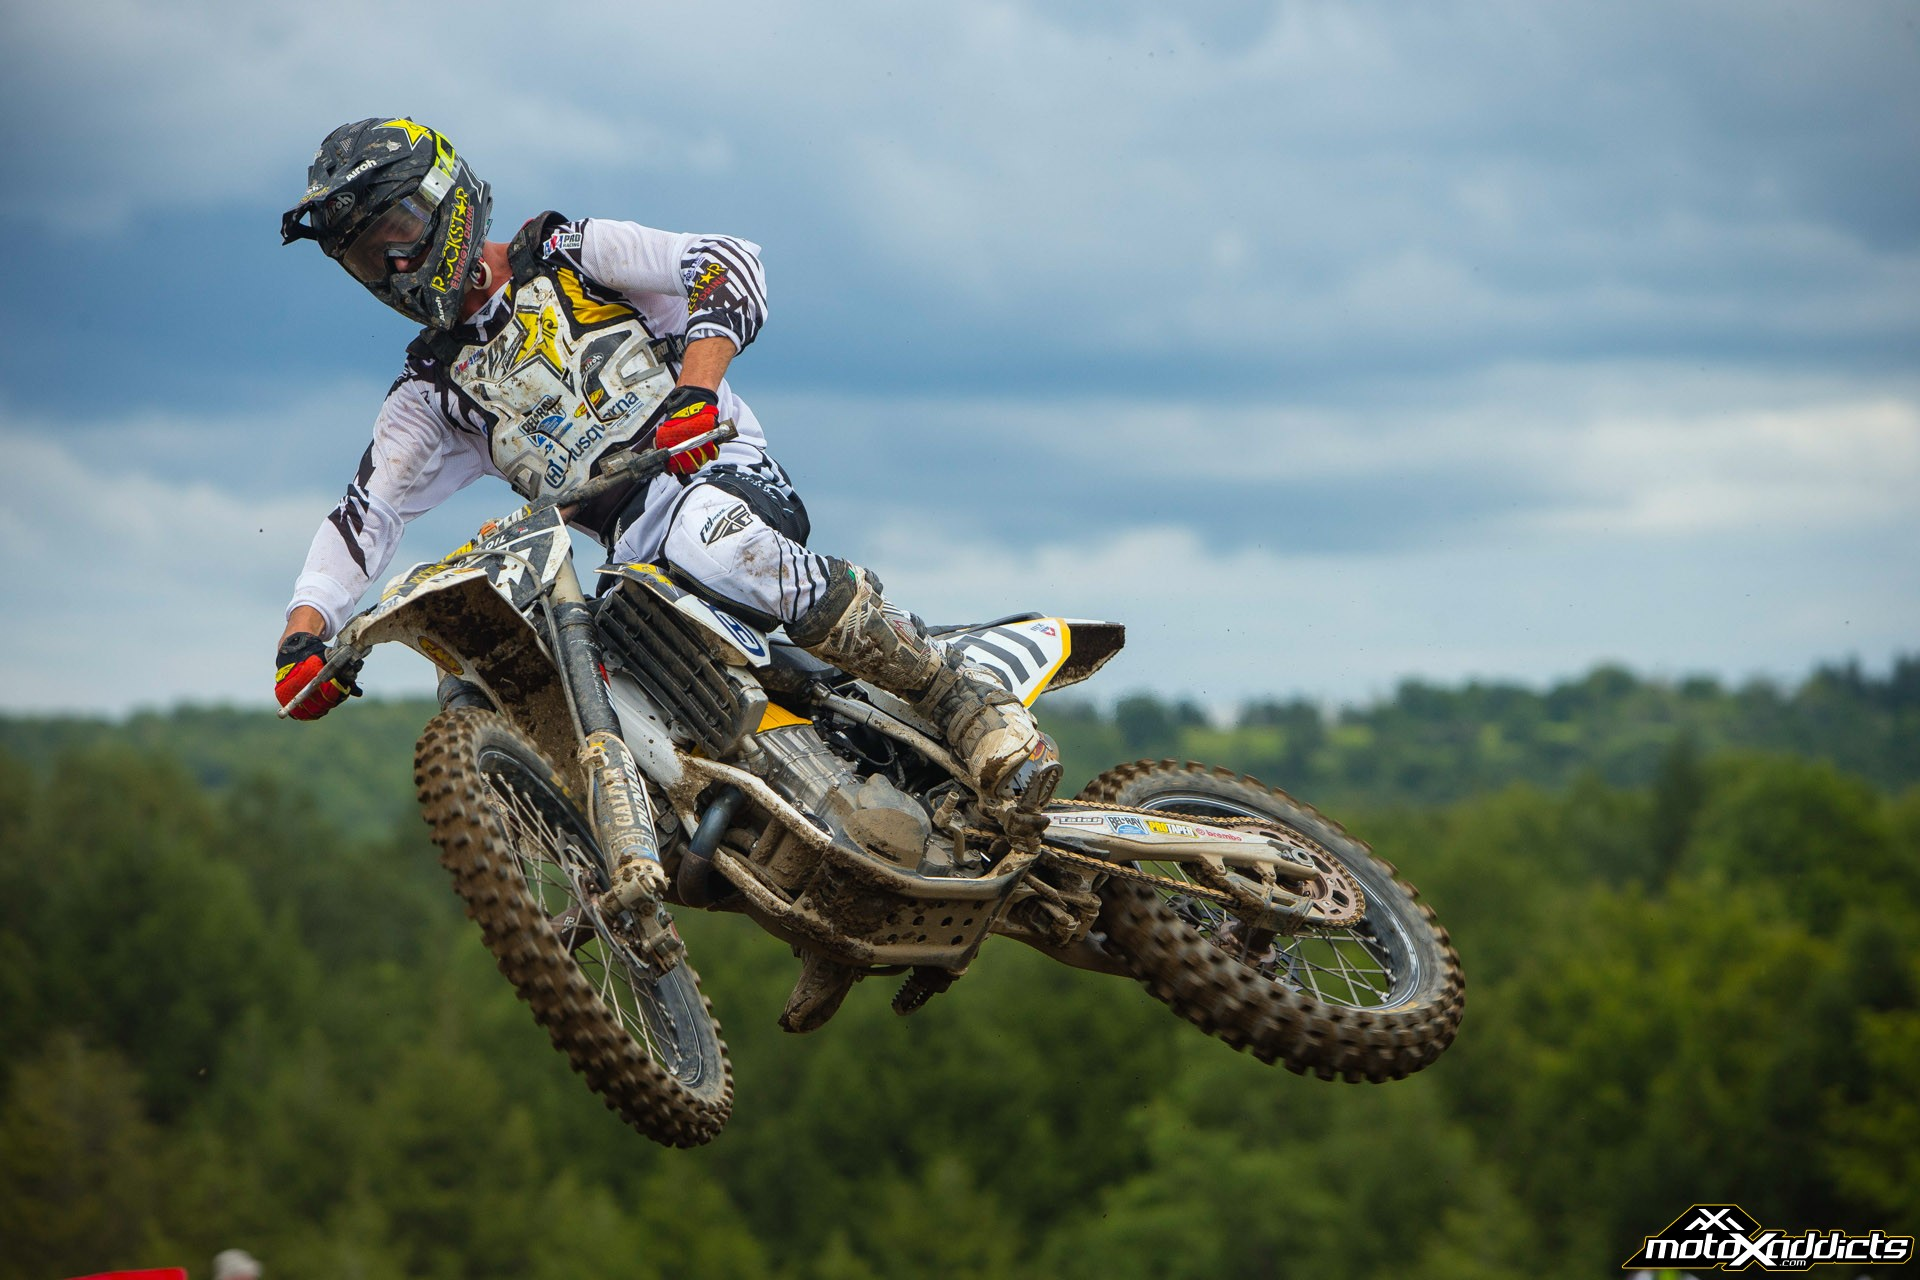 Christophe Pourcel at Unadilla. Photo by: Hoppenworld